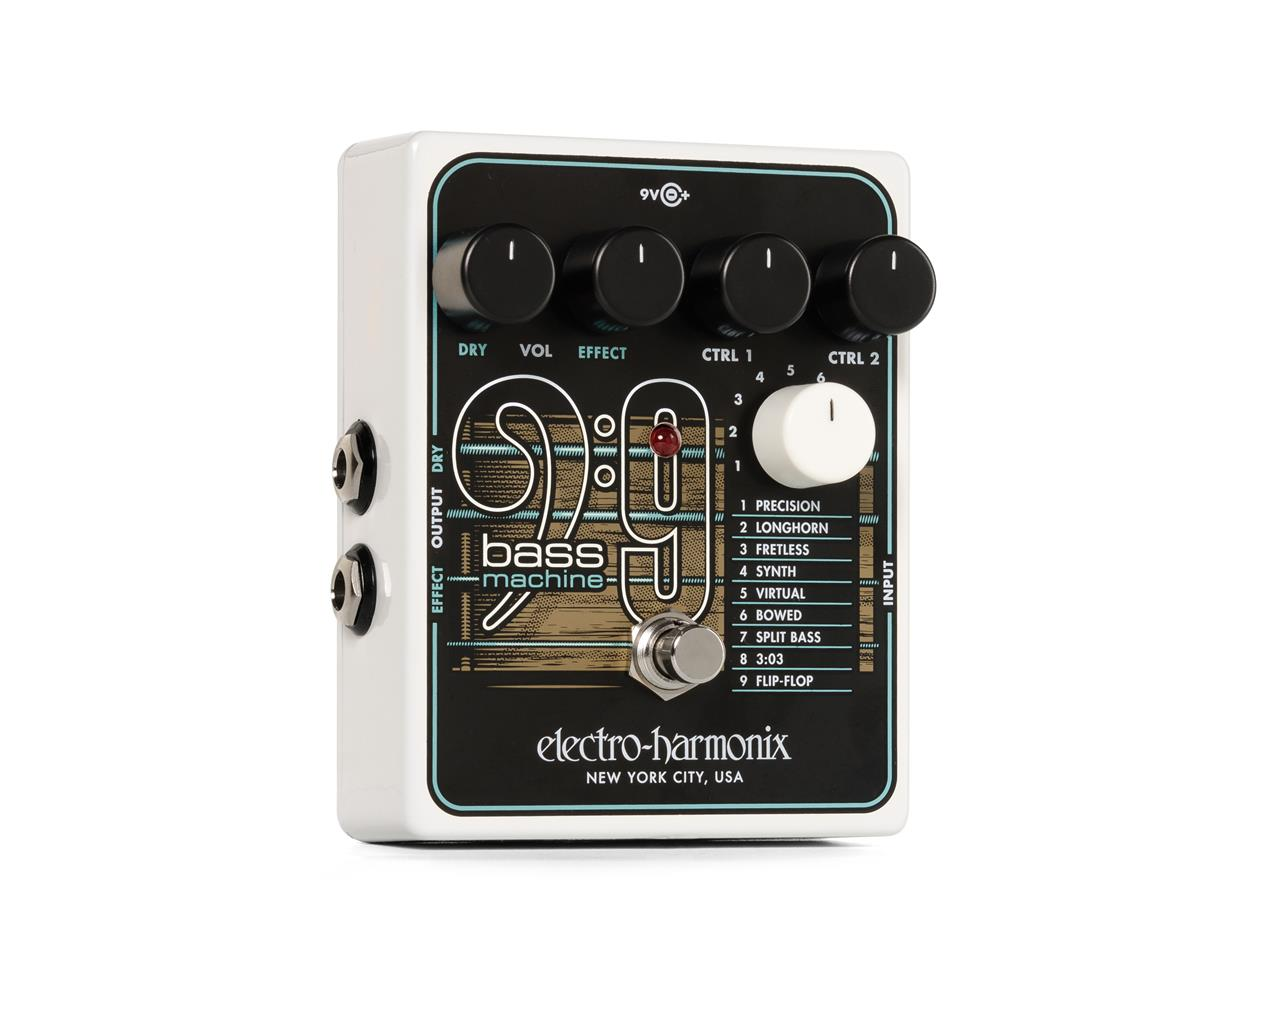 ELECTRO-HARMONIX-BASS9-Bass-Machine-sku-23579